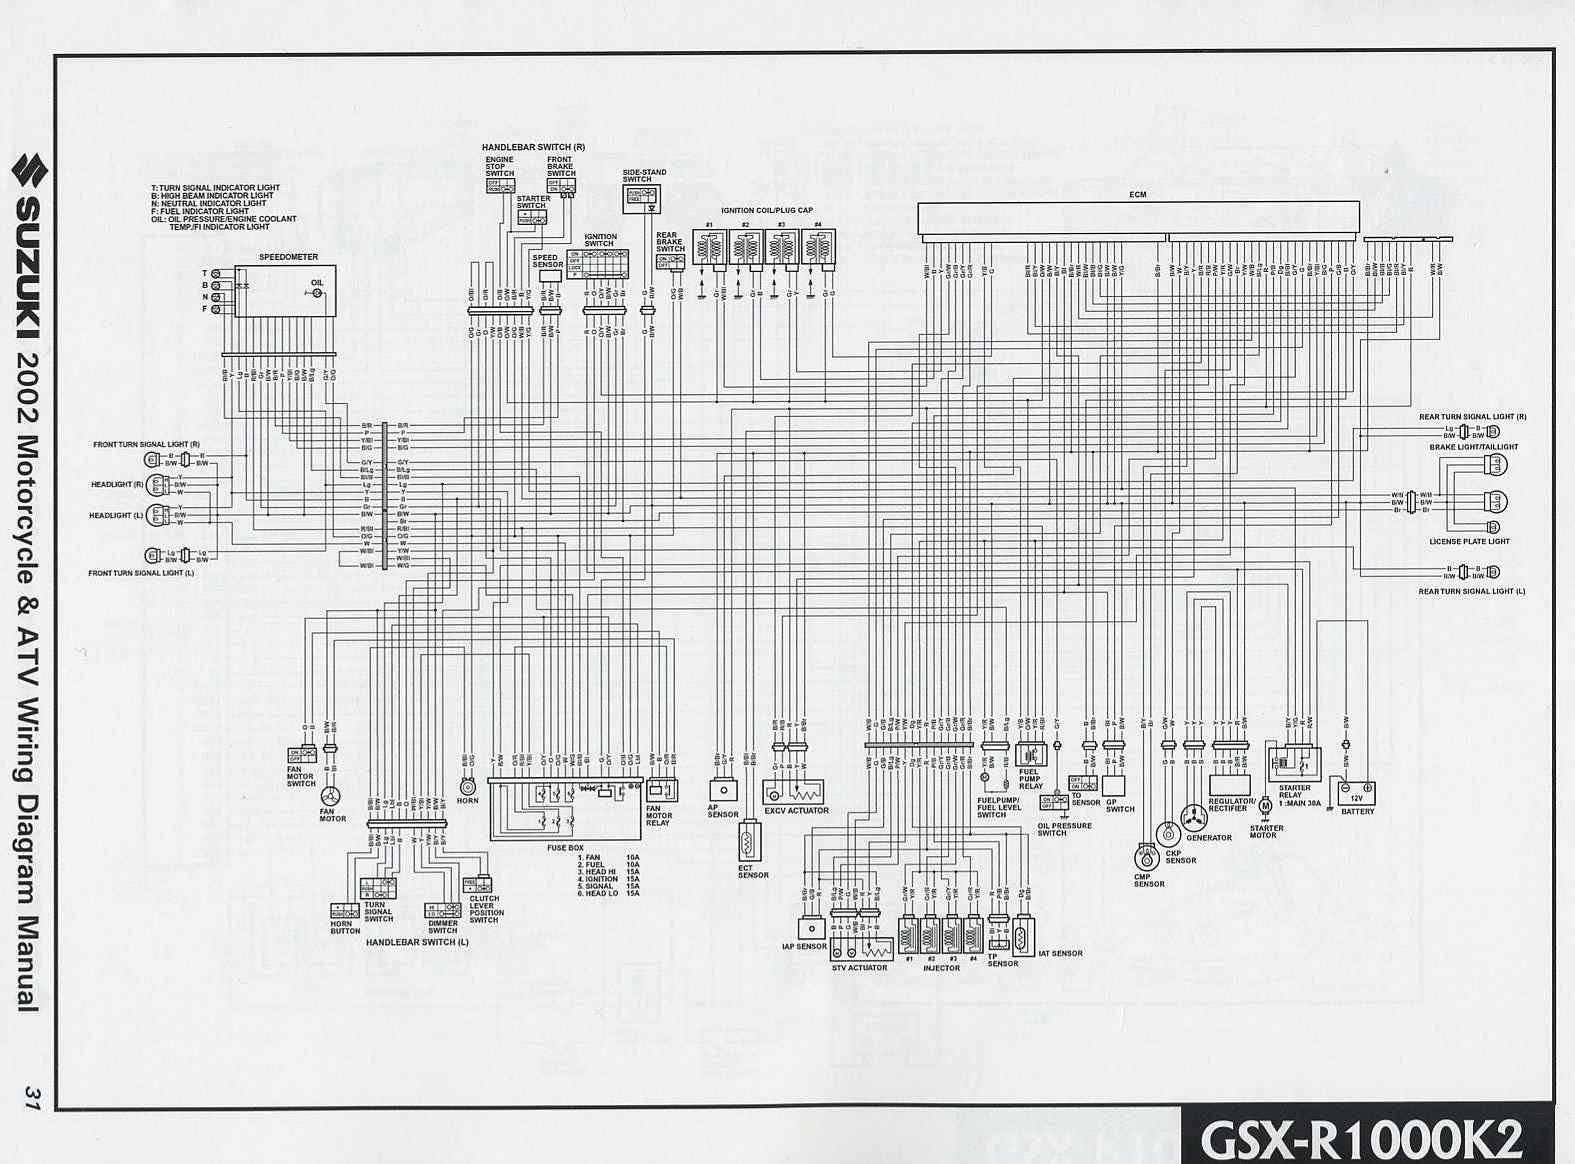 car stereo wiring diagrams director images aftermarket pioneer car stereo wiring diagram lawn tractor honda rebel jpg